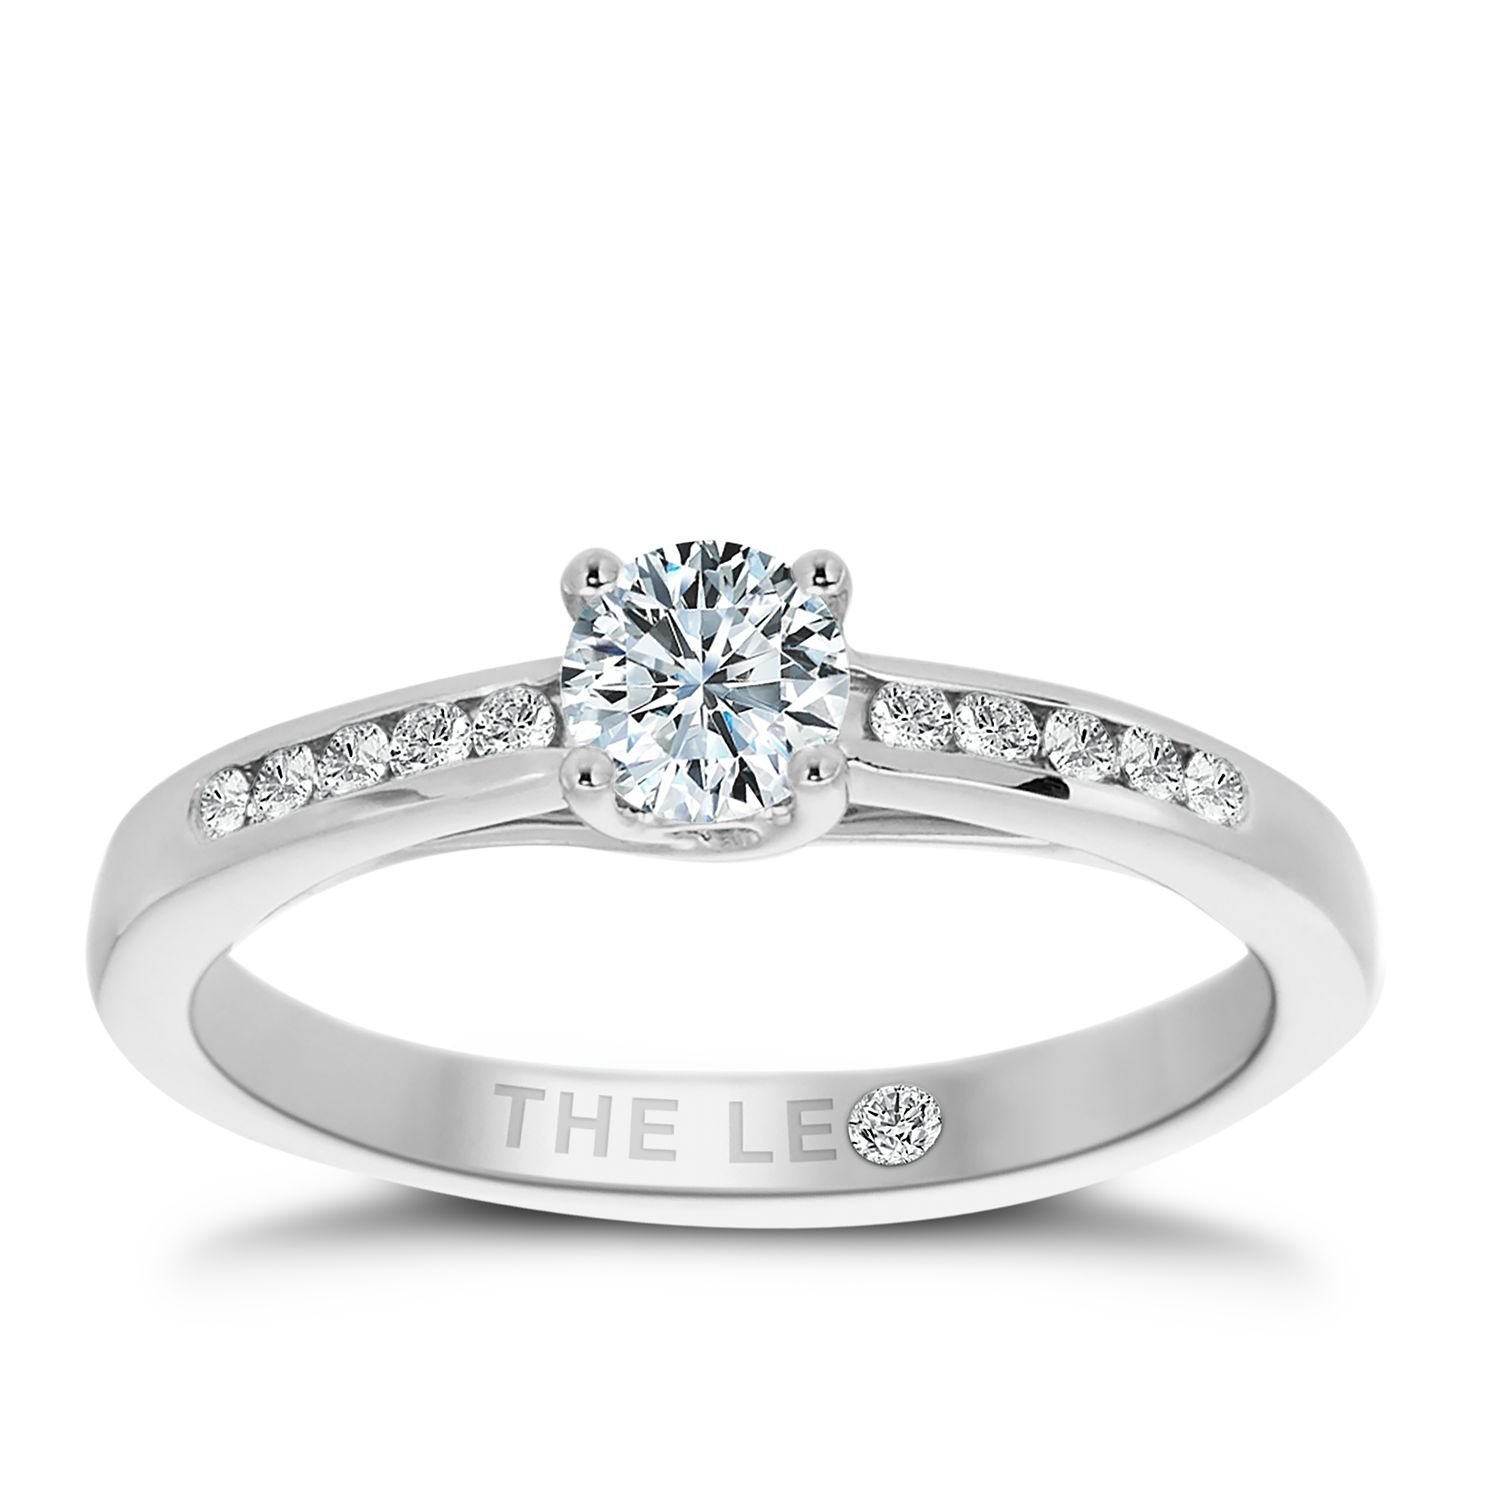 Leo Diamond 18ct White Gold 0.40ct Total Diamond Ring - Product number 1660136